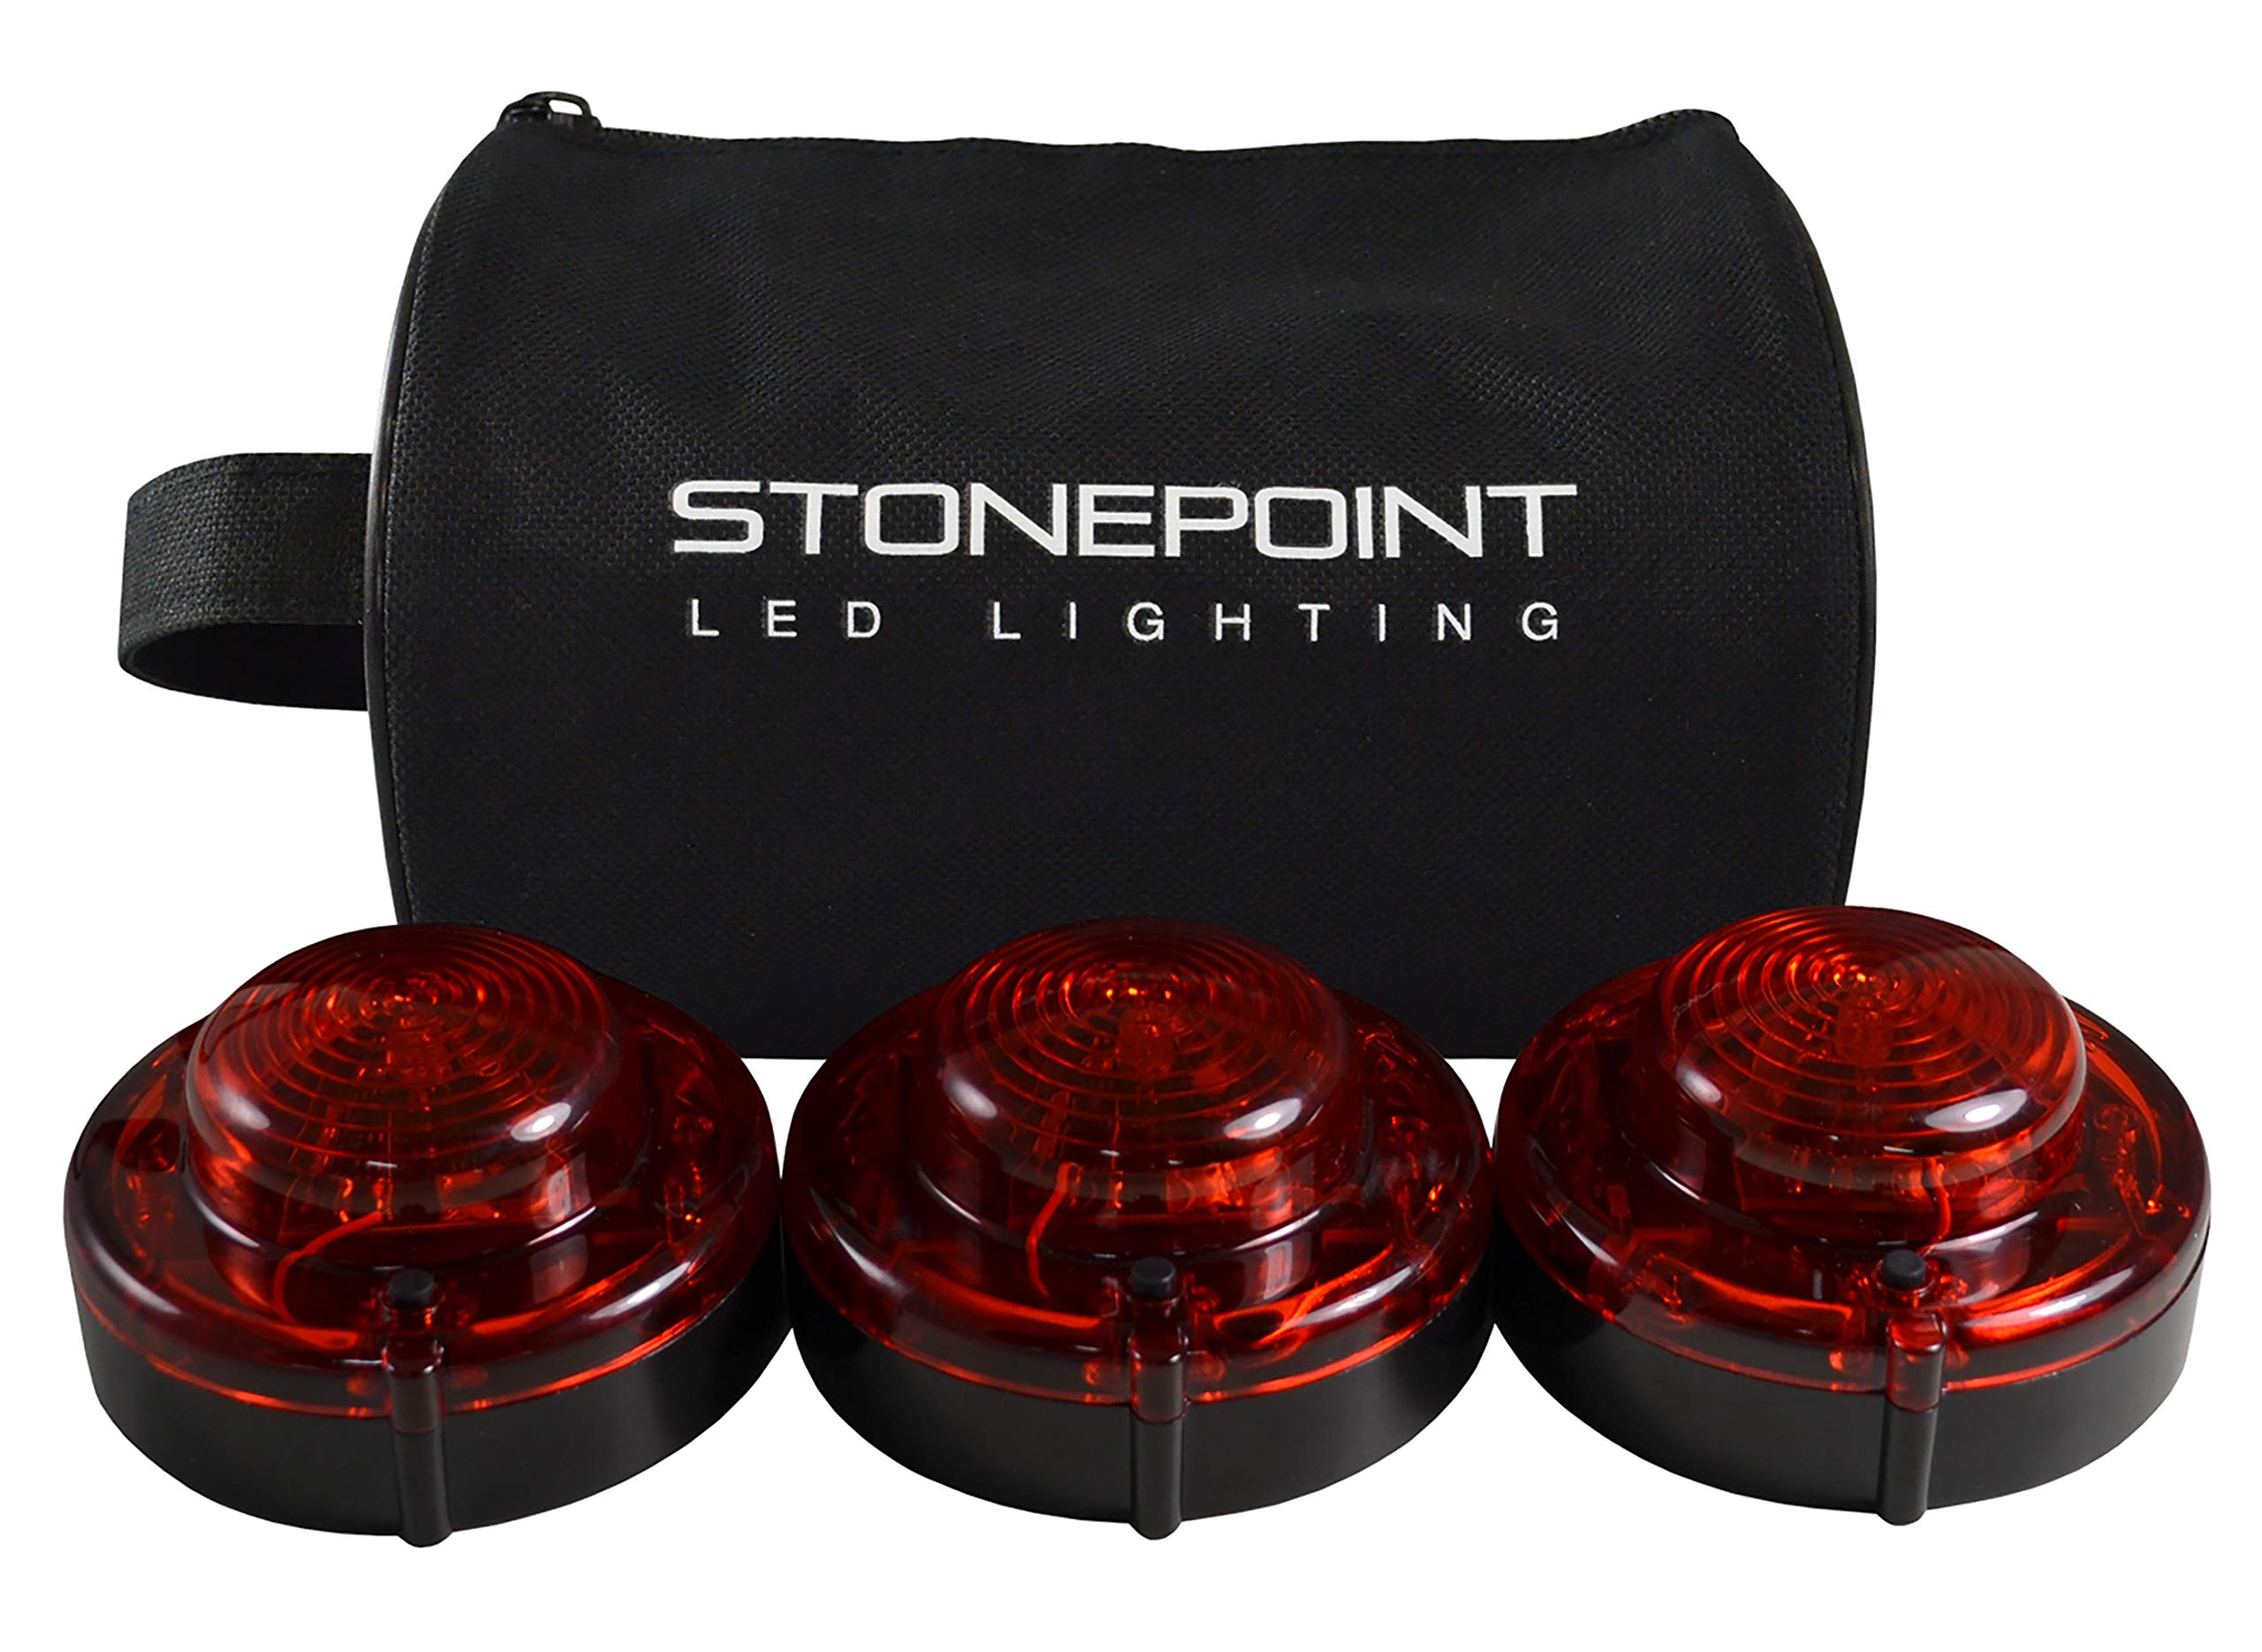 Stonepoint Emergency LED Road Flare Kit - Set of 3 Super Bright LED Roadside Beacons with Magnetic Base - Flashing or Steady Red Lights Visible Up to 2 Miles Away - Includes Storage Bag